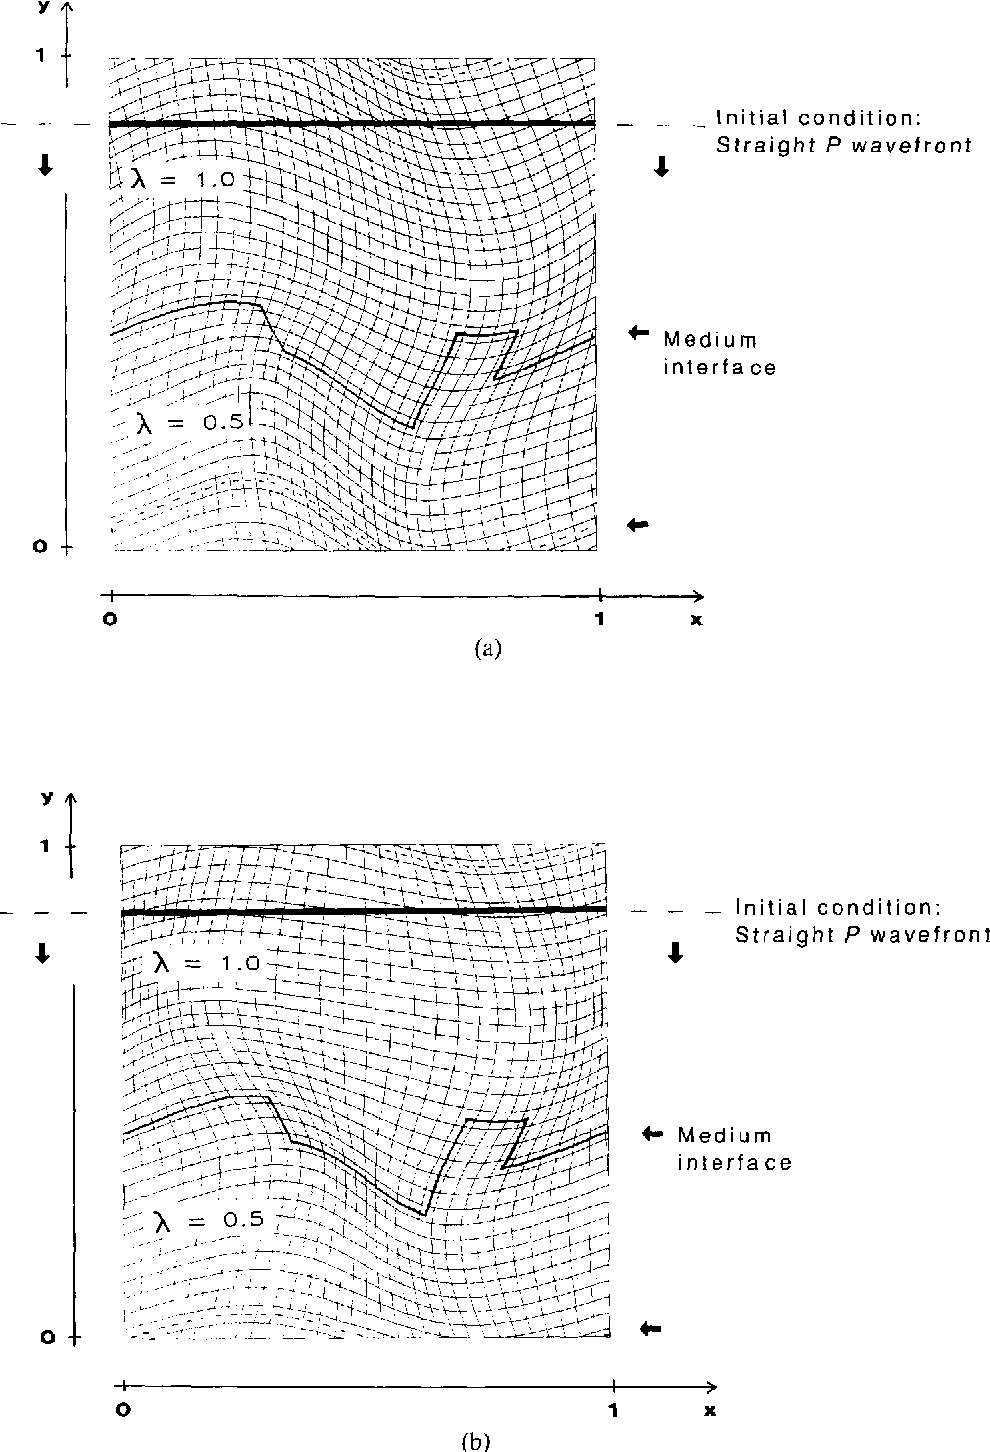 FIG. 6. Initial conditions and medium parameters in test case 2. (a) and (b) show two different mappings, denoted grid 1 and grid 2, respectively. for the same problem.